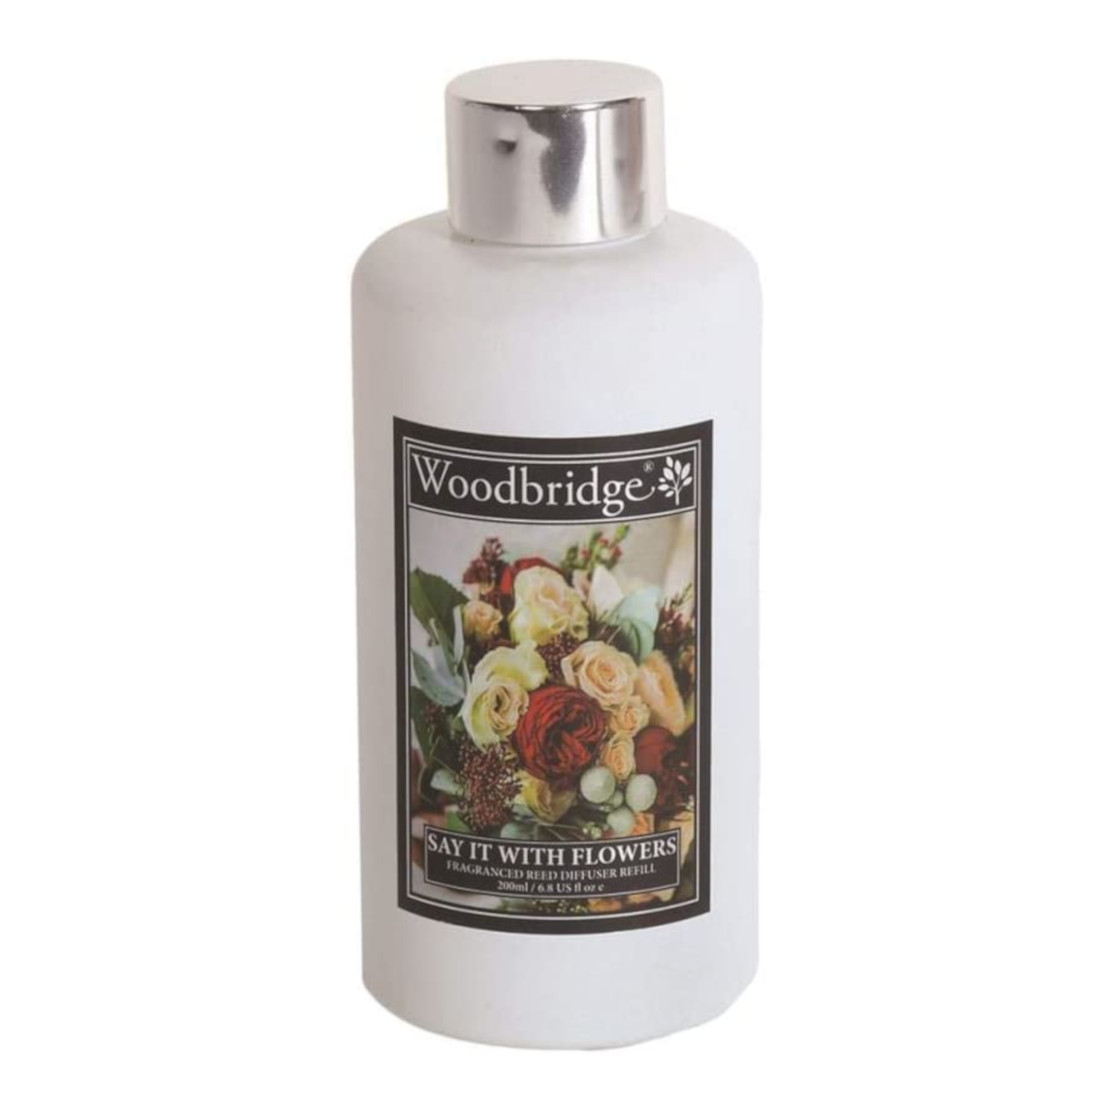 Woodbridge Say It With Flowers Diffuser Refill 200ml